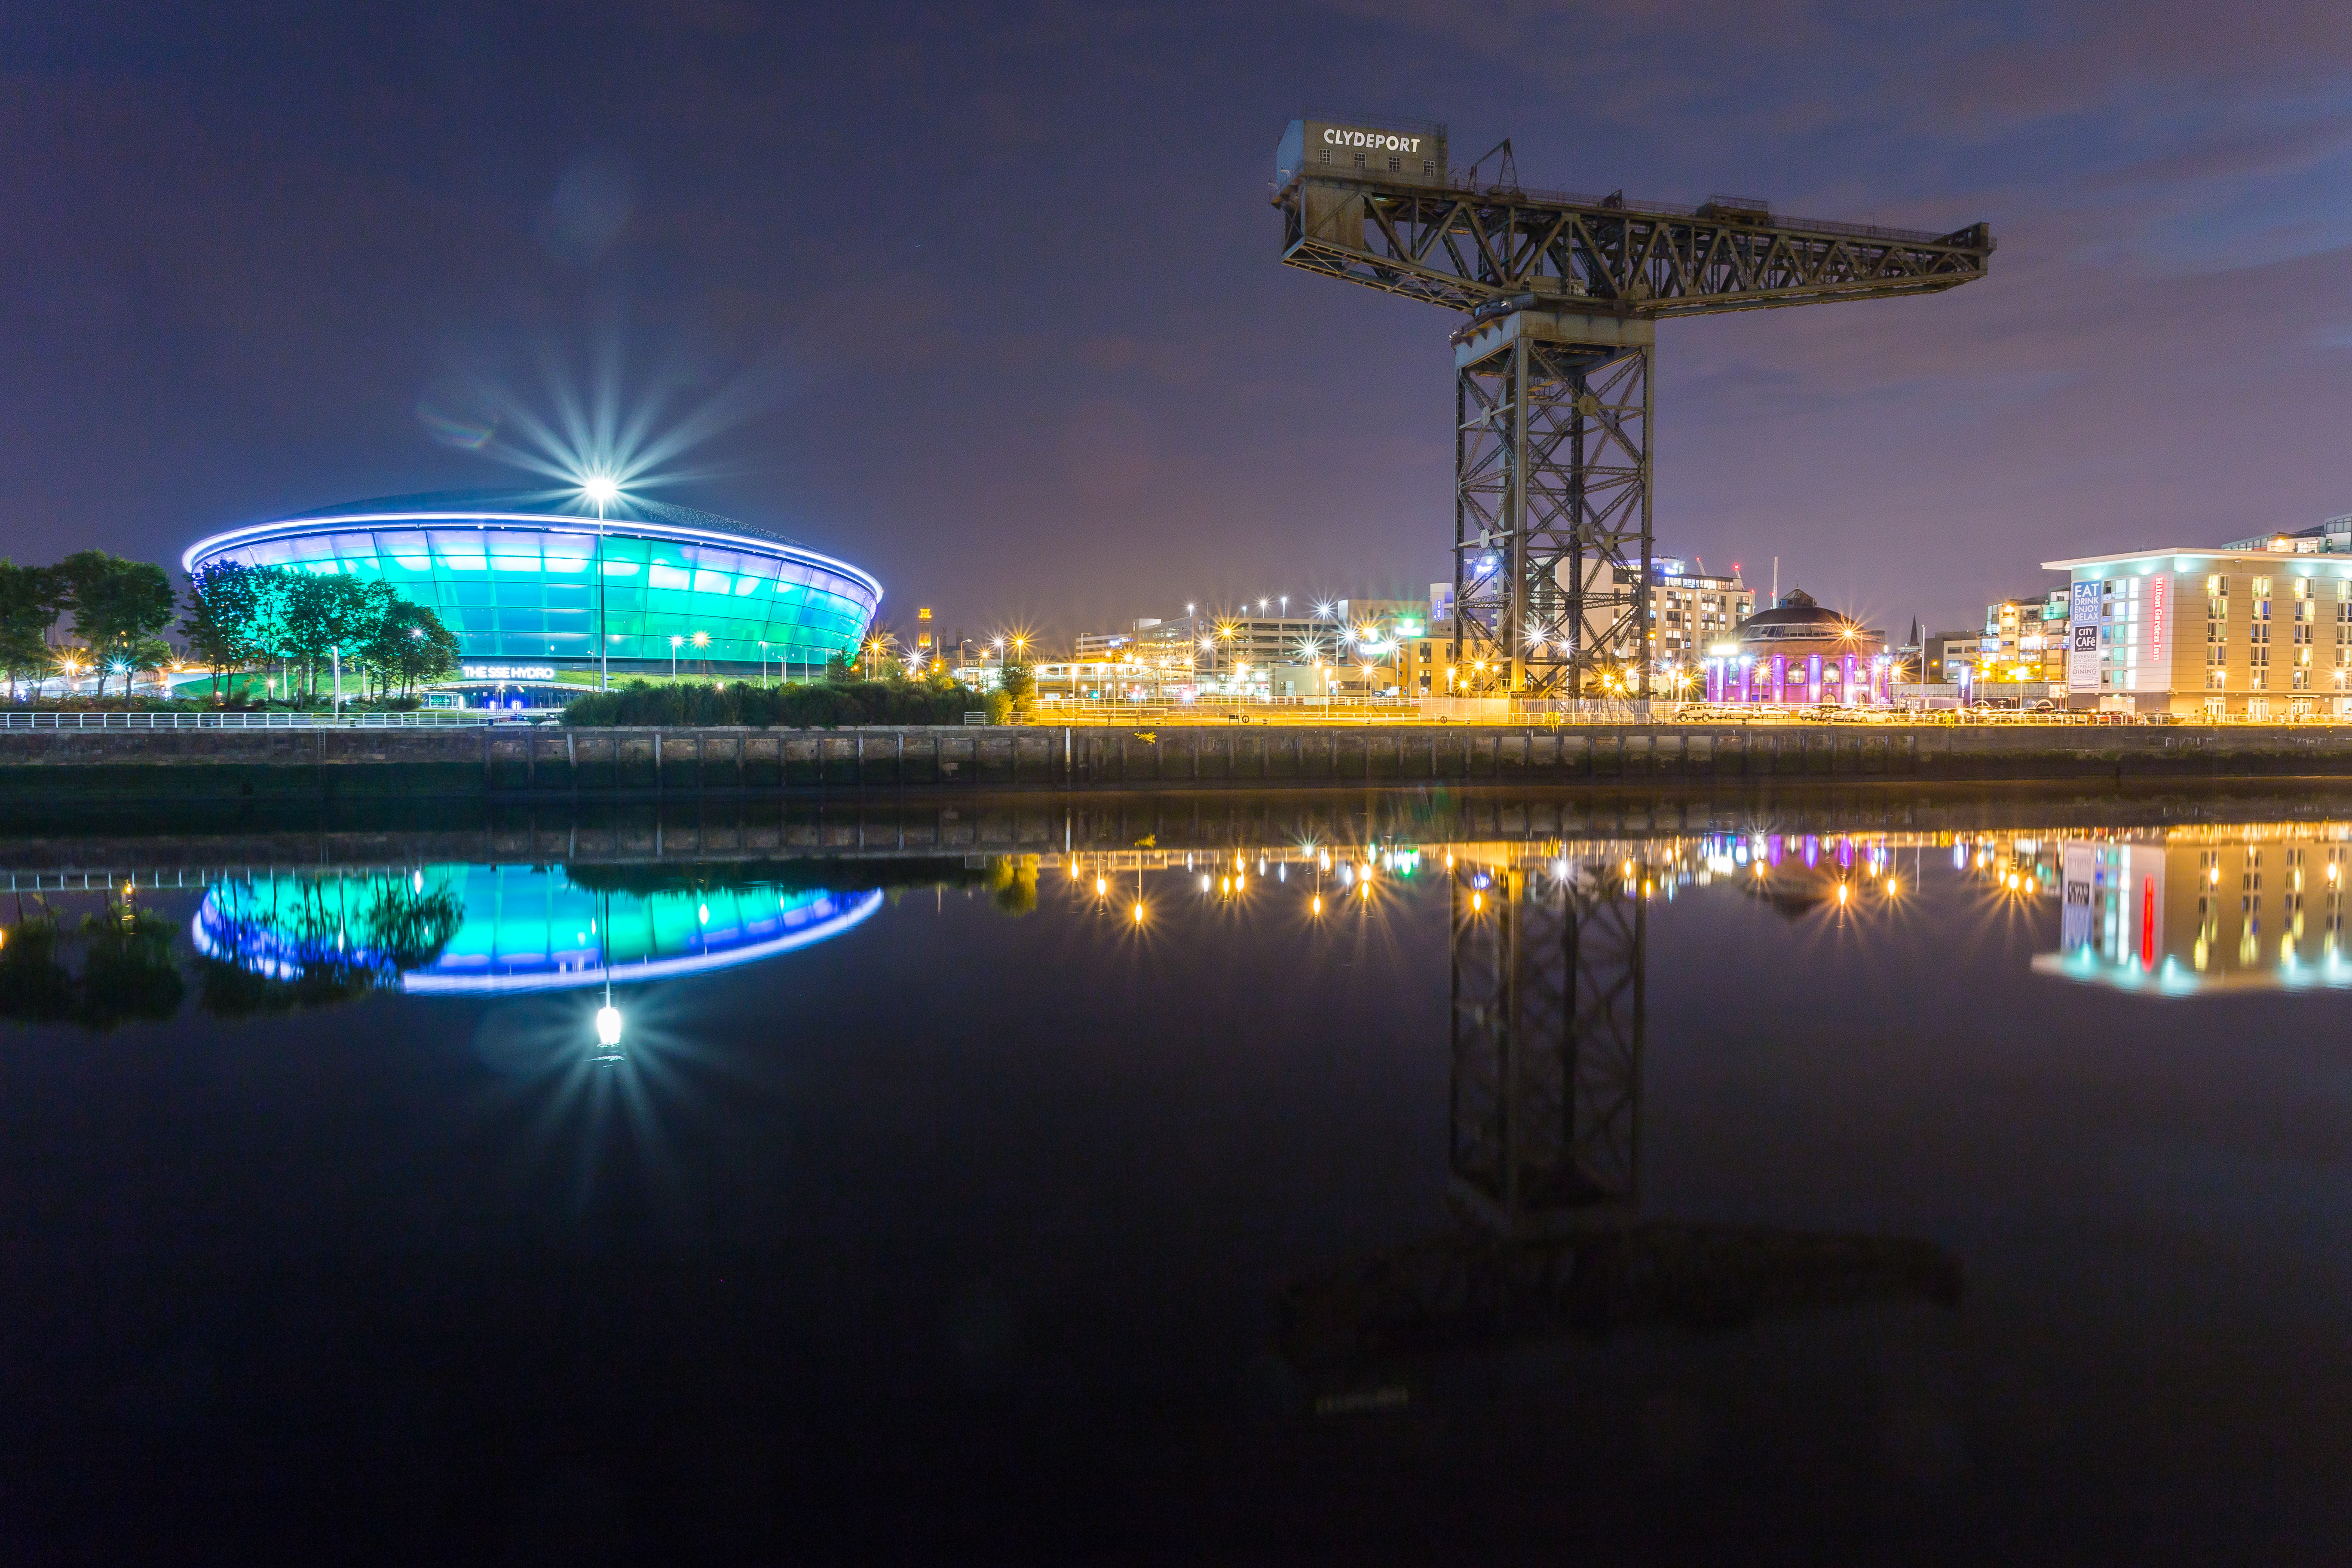 Hydro and Clydeport Crane  C7